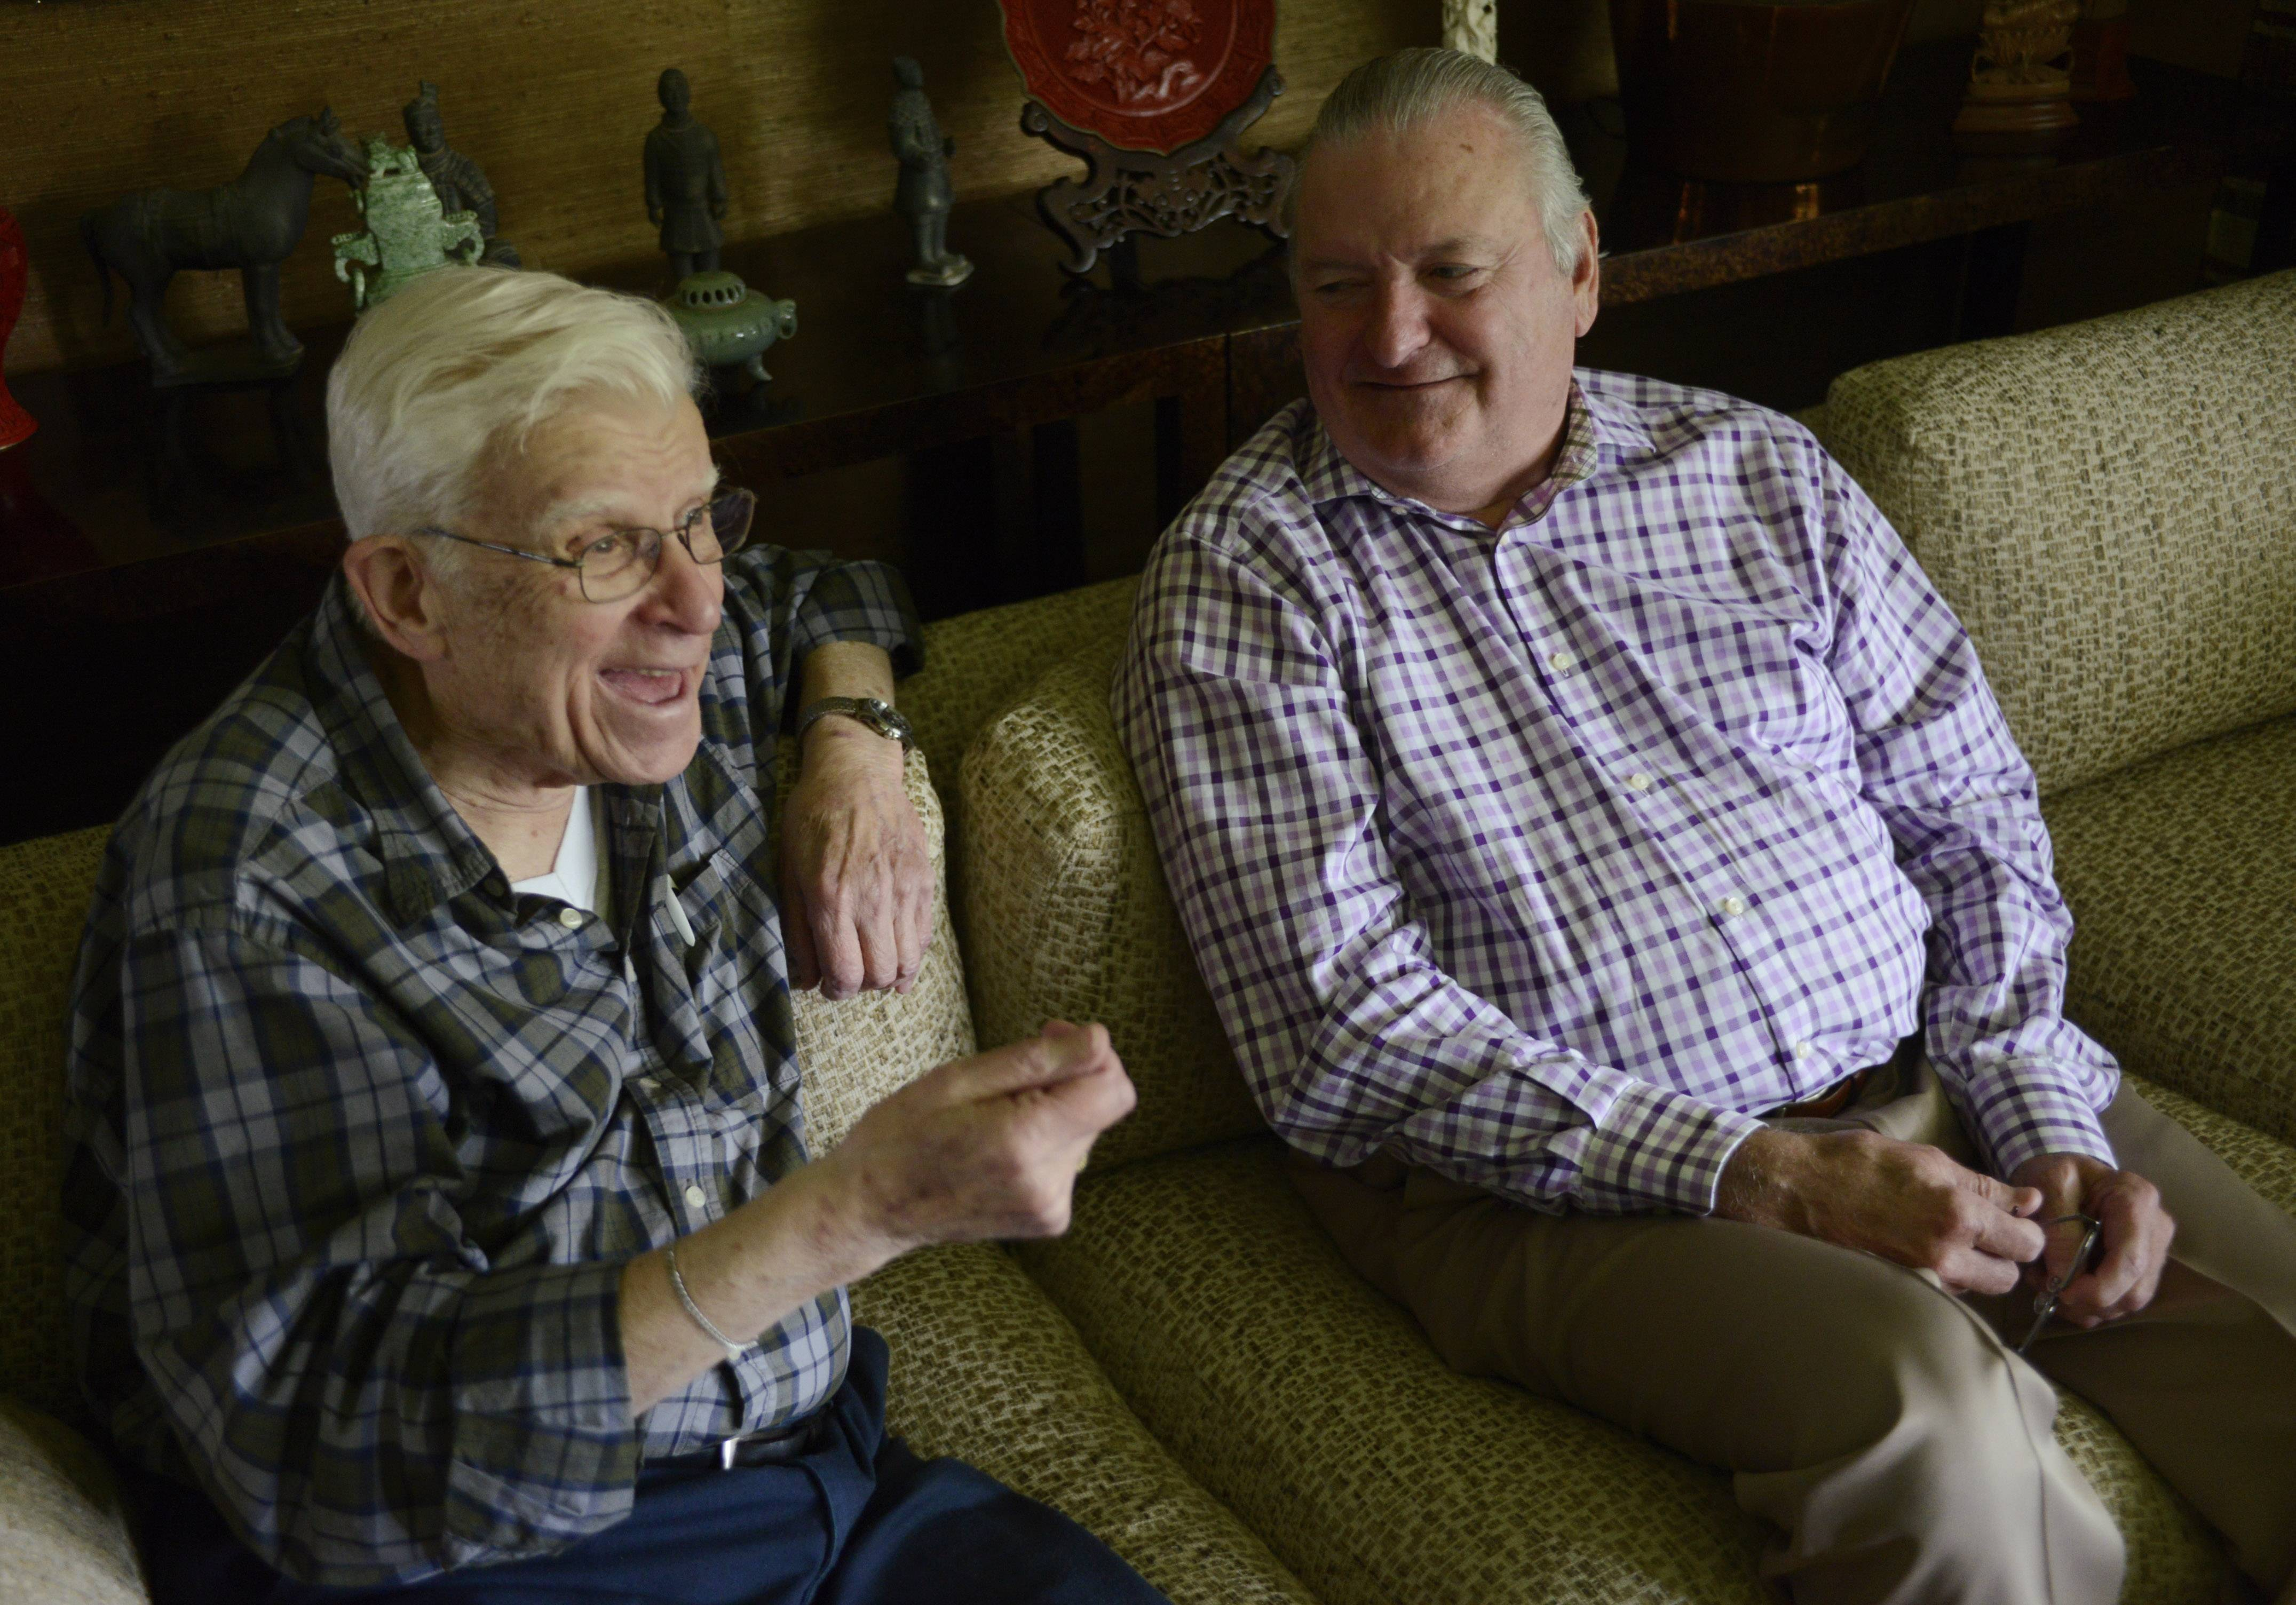 "Burt ""Sarge"" Showers, left, a World War II veteran who served under Gen. Douglas MacArthur and later retired after teaching at two Northwest suburban high schools, now has a scholarship named in his honor. The scholarship, to be given annually to a Palatine High School senior, is funded by former student Ed Rogan, right."